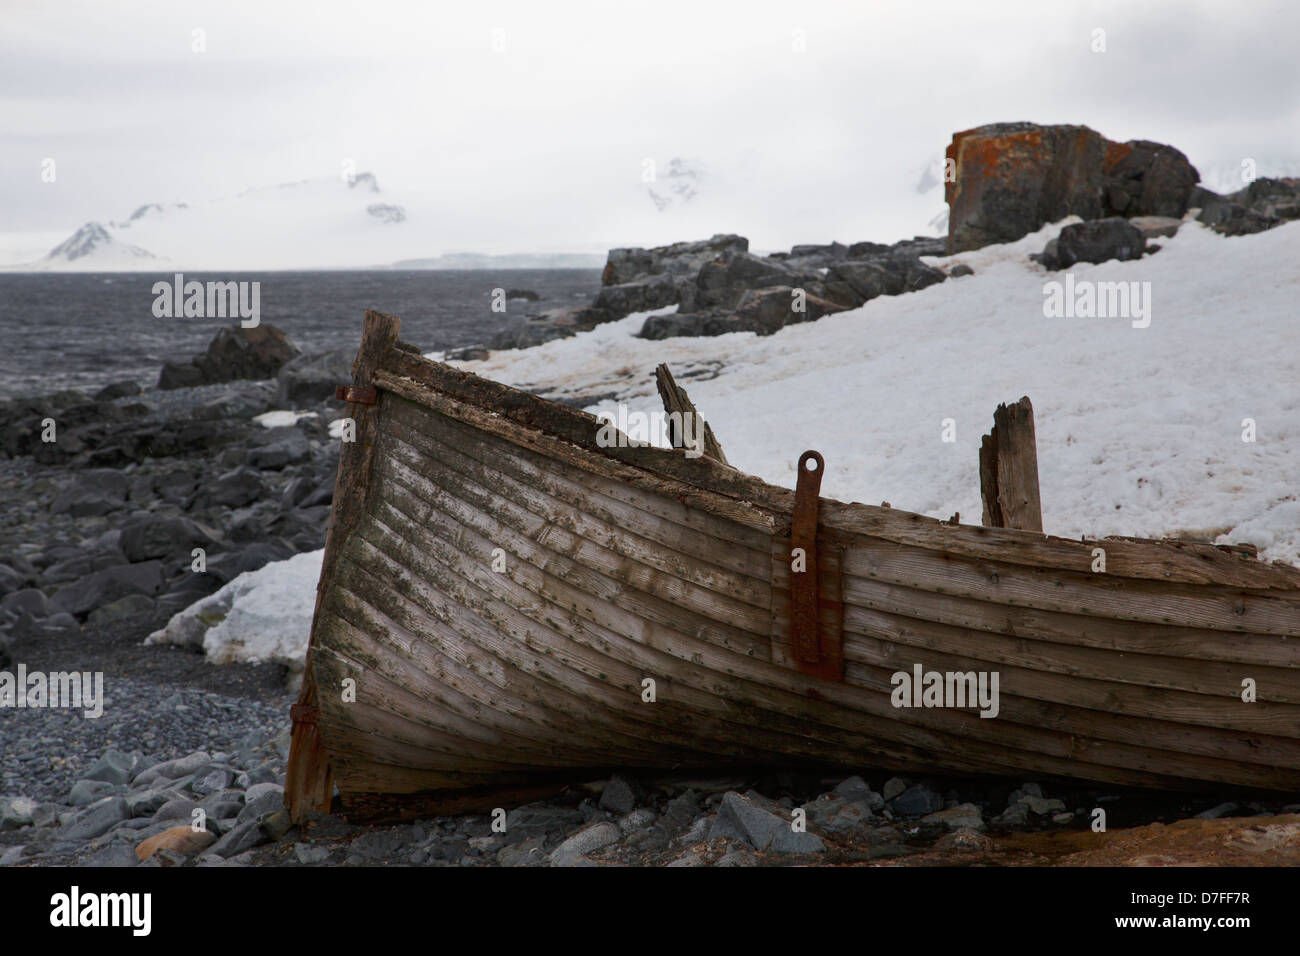 An old dory on Half Moon Island, Antarctica. - Stock Image